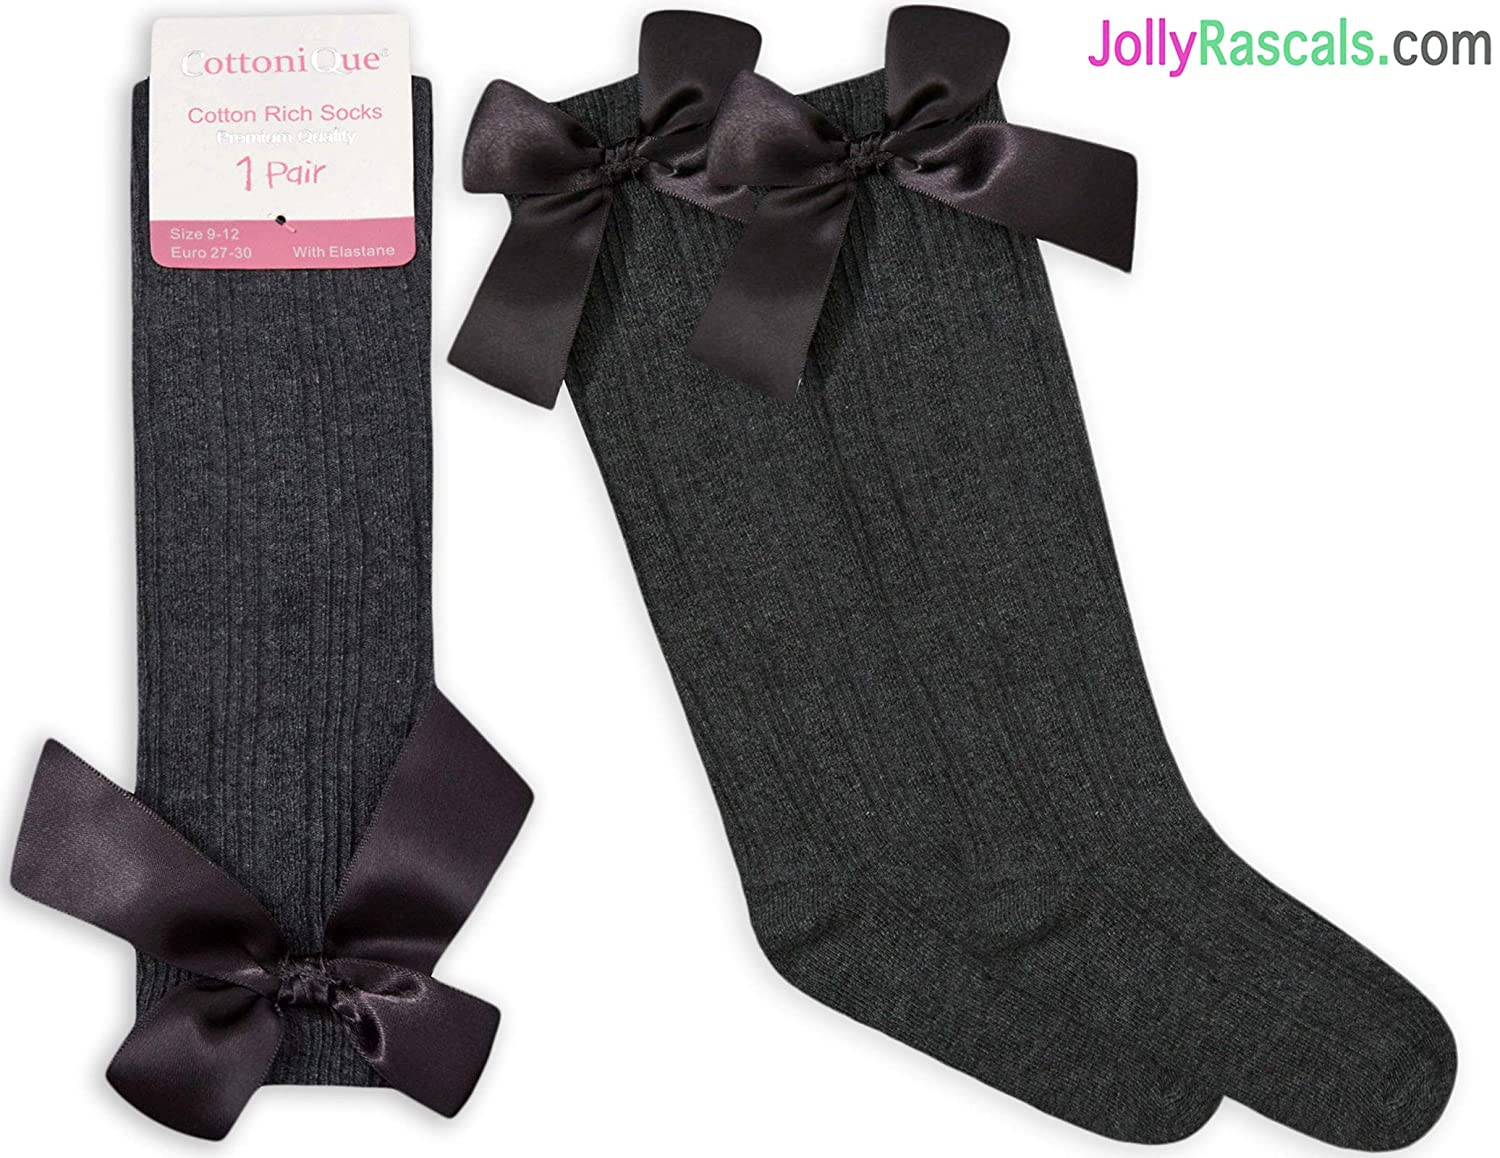 JollyRascals Girls Knee High Socks with Bow Kids New Cotton Rich School Socks 6 Colors All UK Sizes